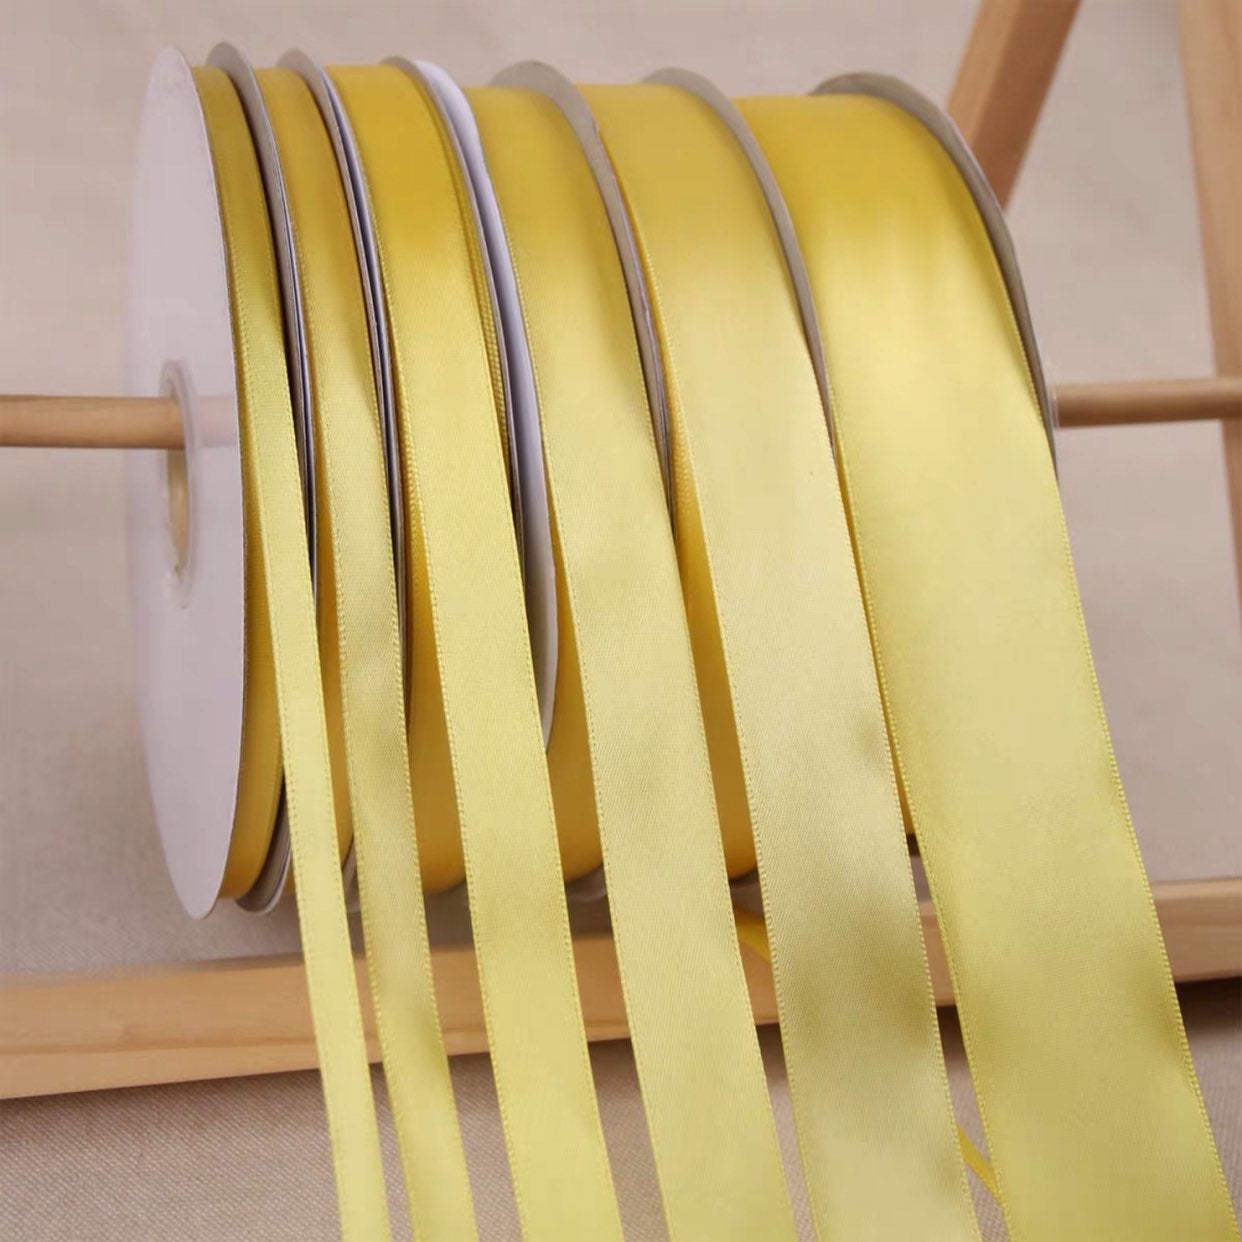 Yellow Satin Ribbon Roll Wholesale Christmas Gift Wrapping Wedding Party Favors Chair Decorations Tags Box Ribbons